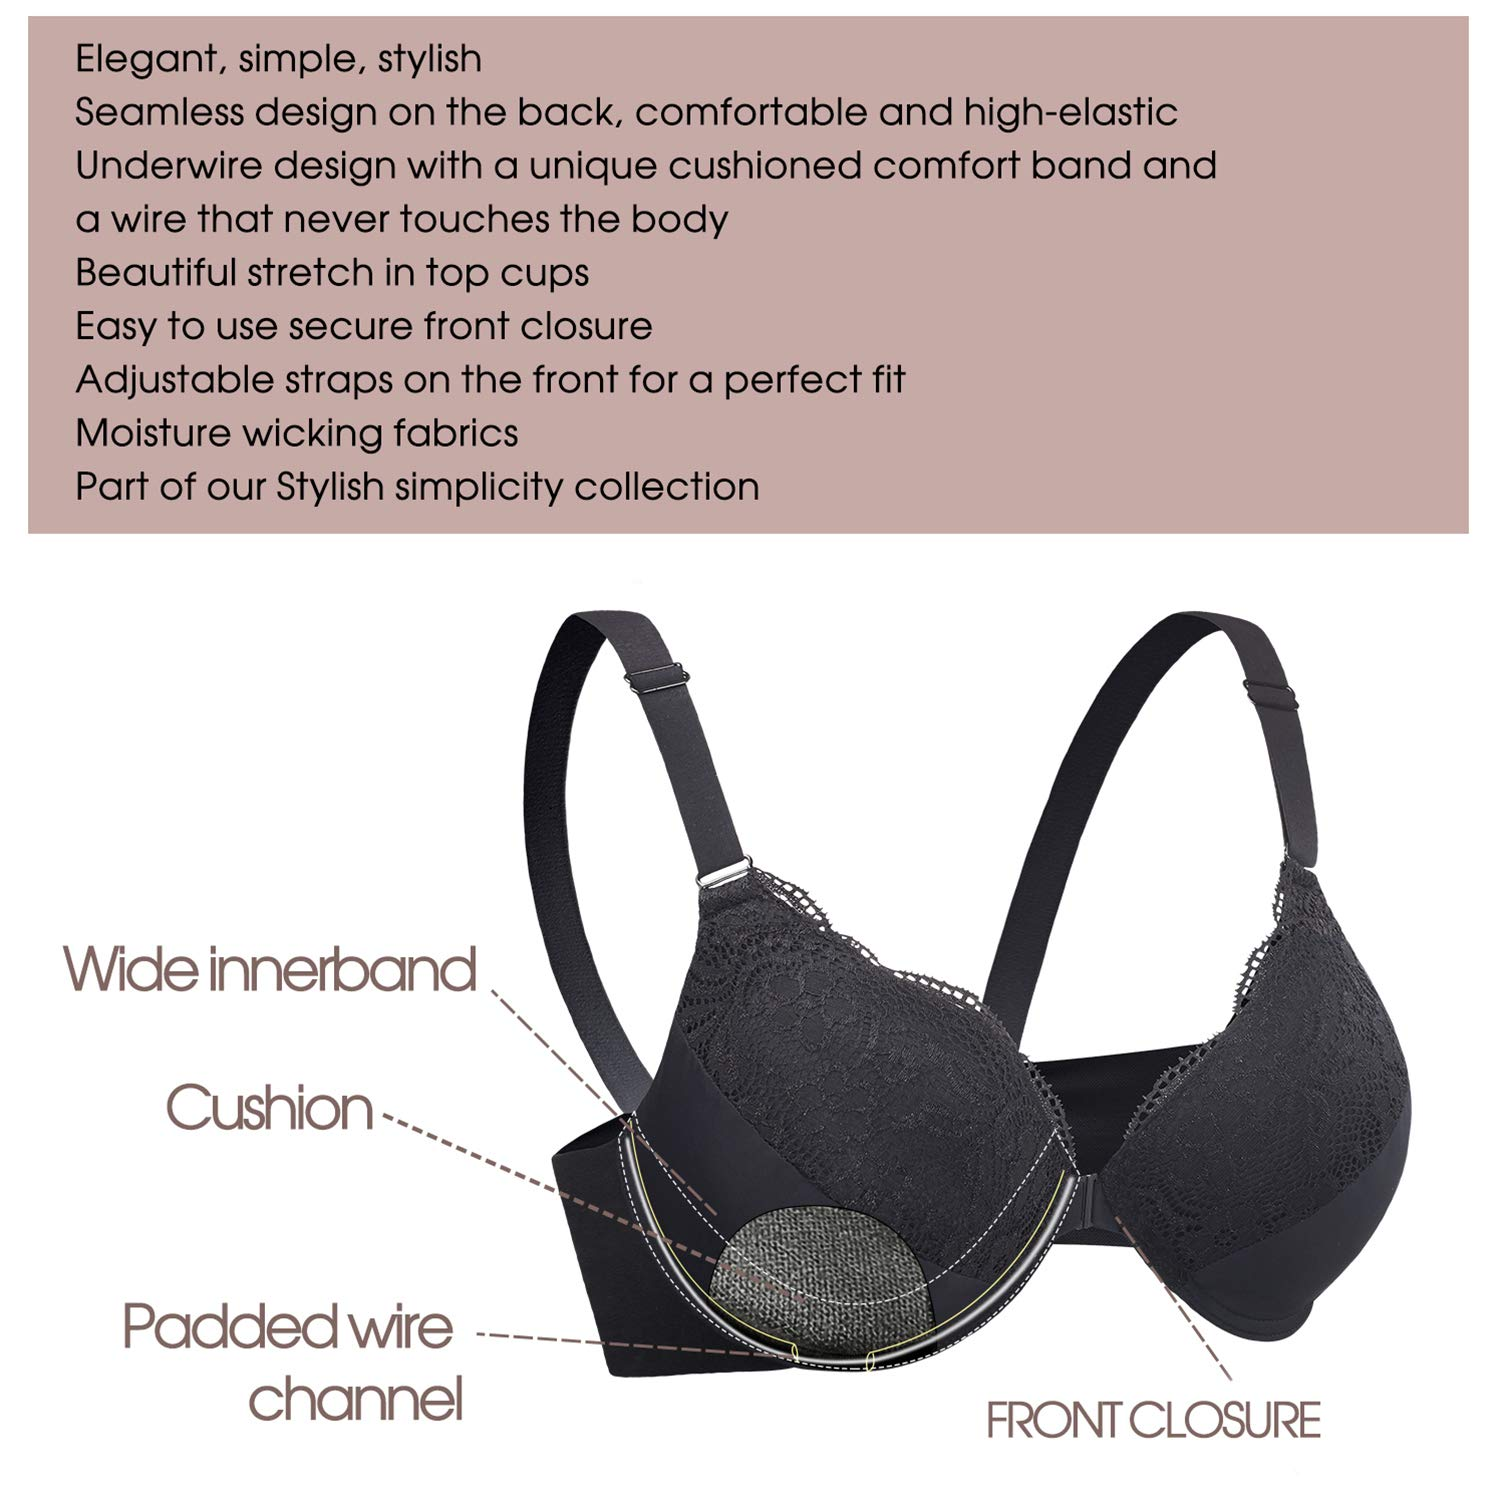 38D-46DDD Womens Plus Size Front Closure Bra Support Underwire Full Coverage Everyday Bra for DDD Cup